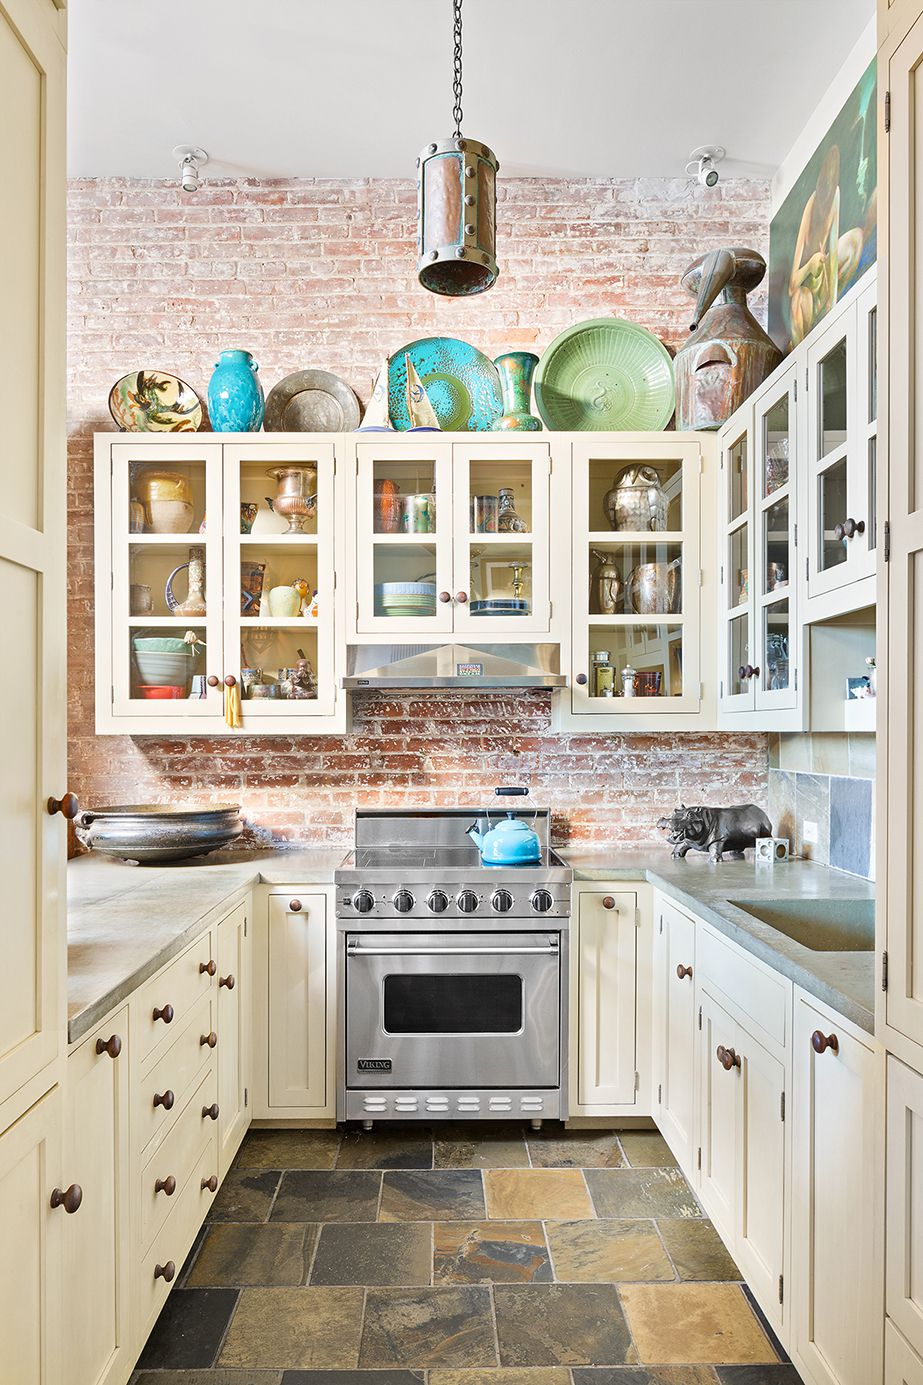 A kitchen with beige wood cabinetry.